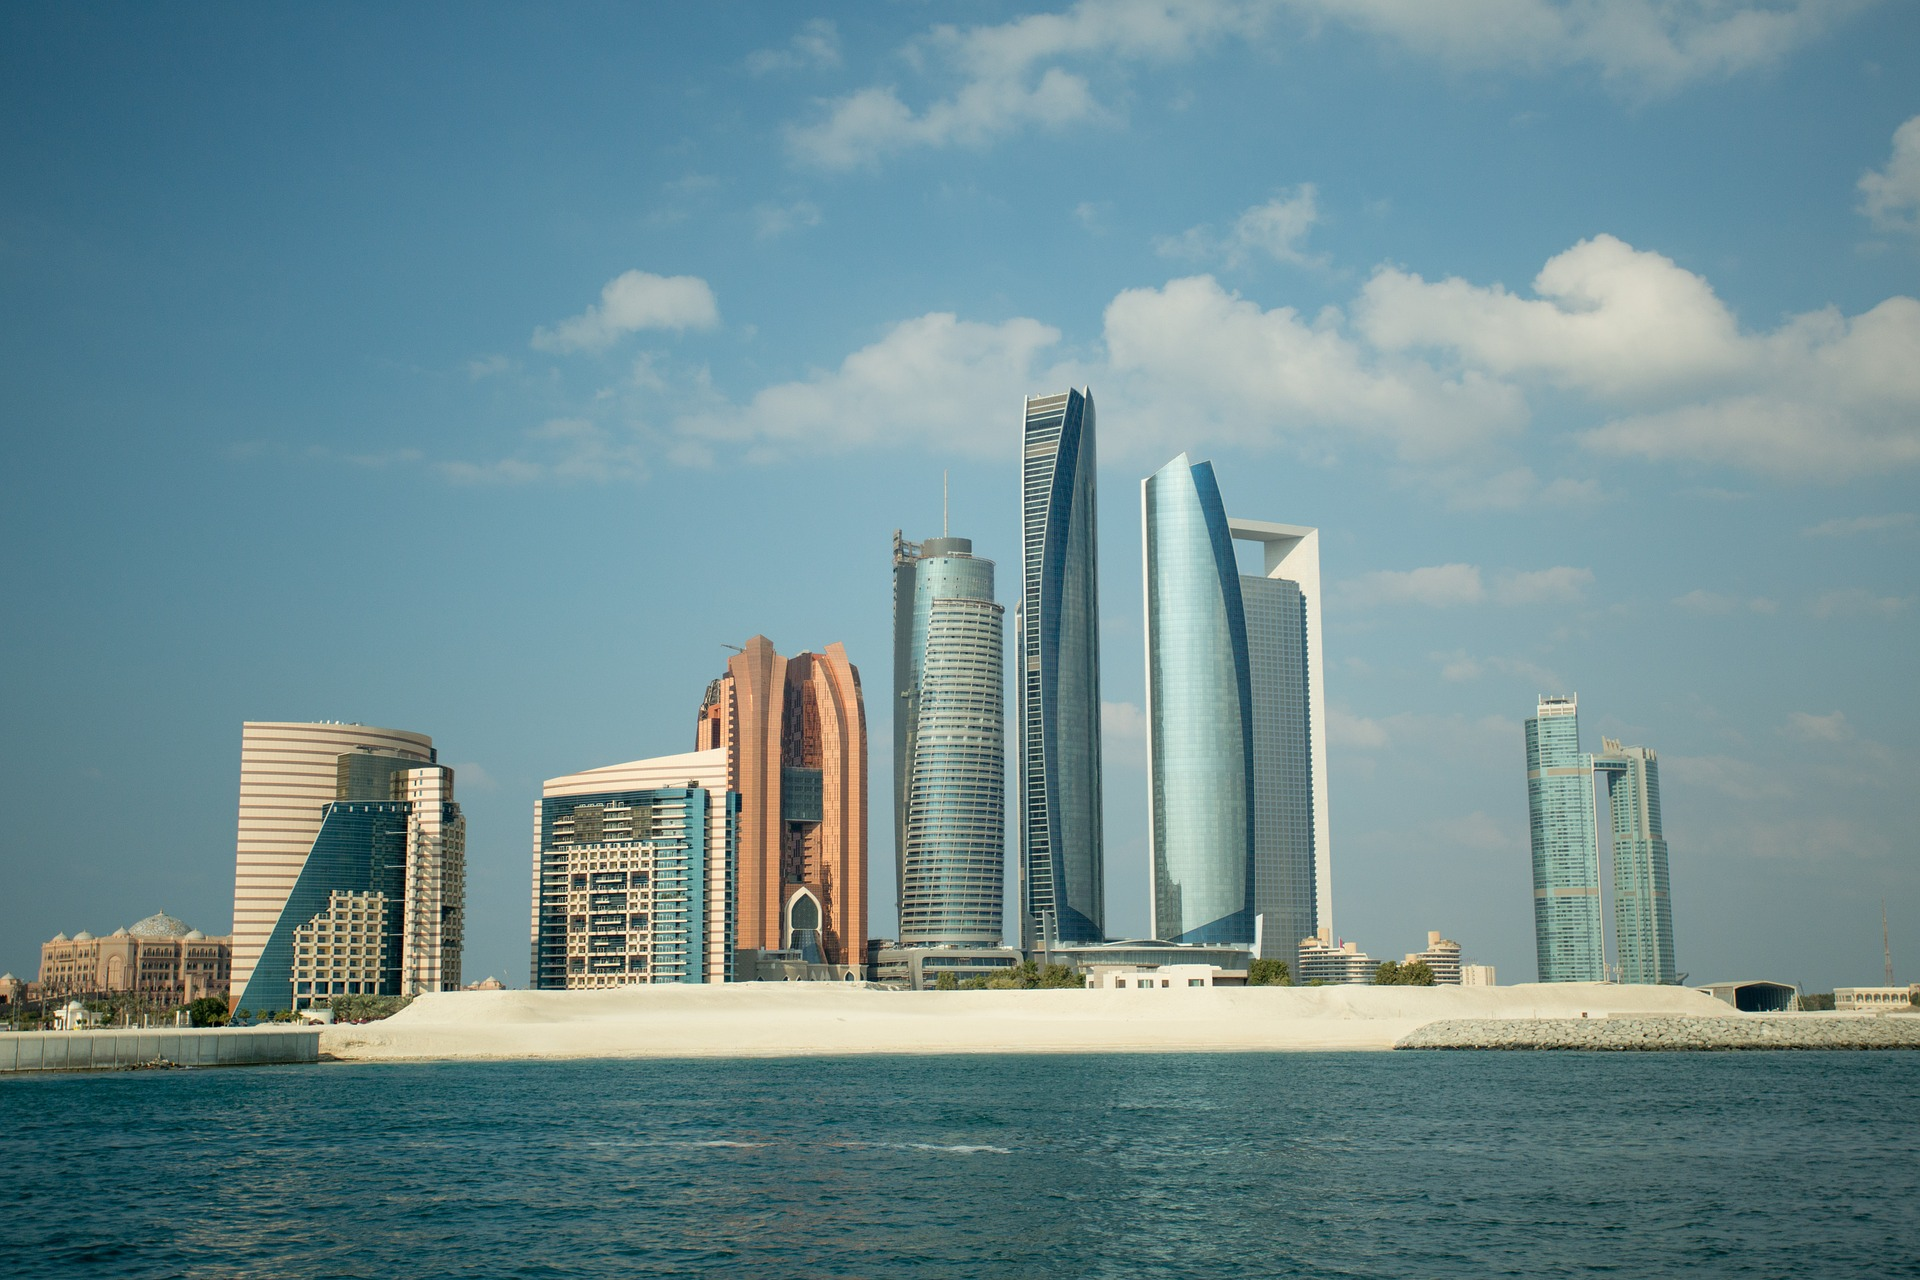 Establish your company and set up your dream business in the capital of United Arab Emirates – Abu Dhabi